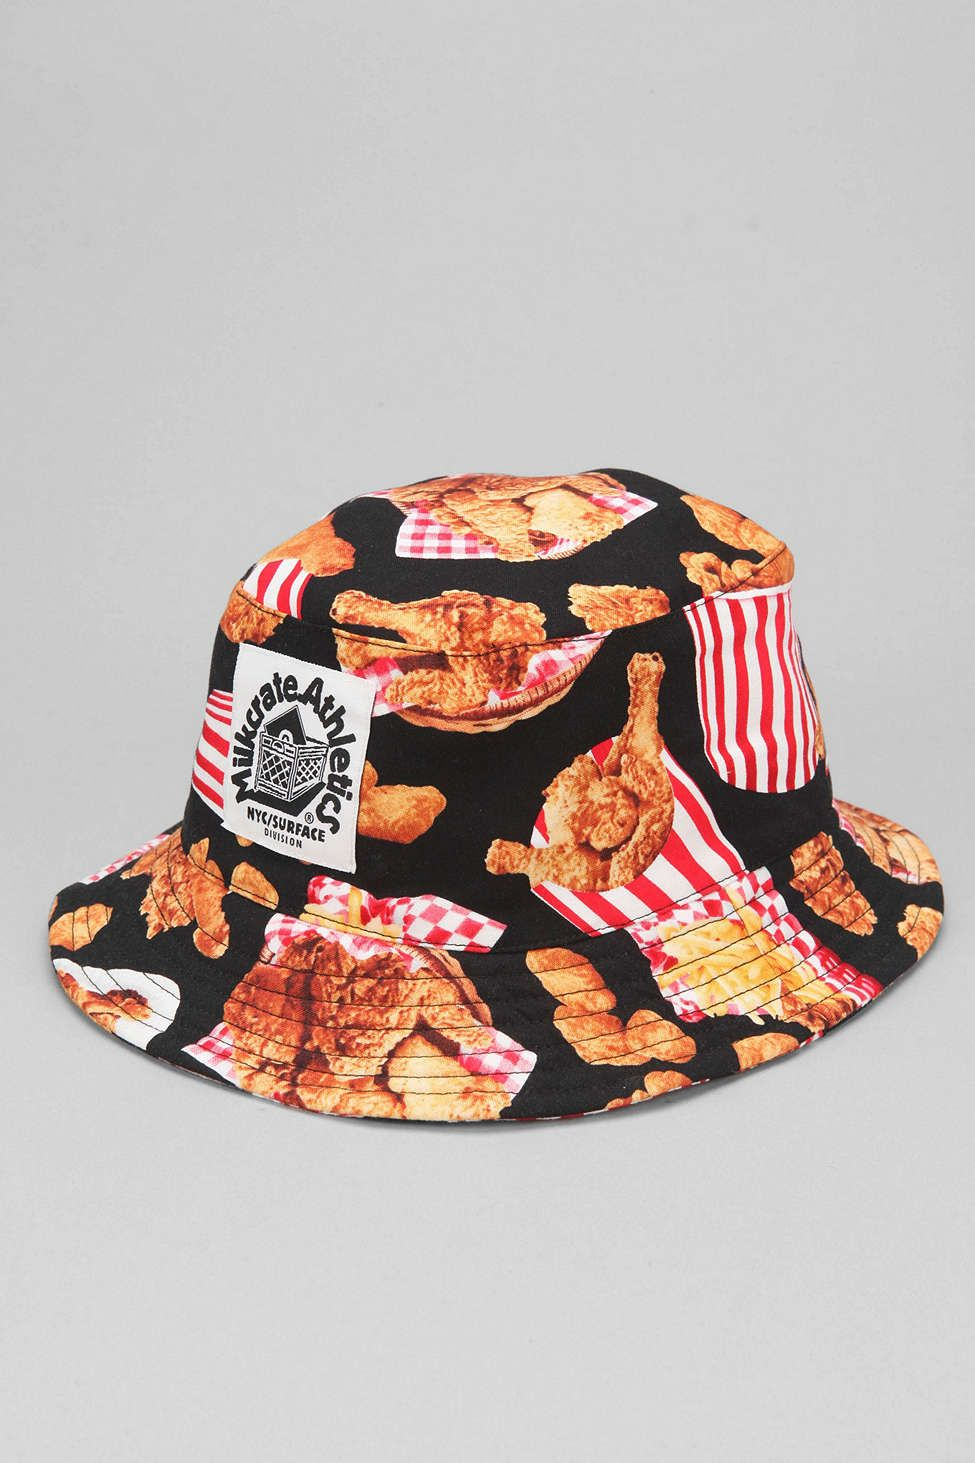 Milkcrate Athletics Fried Chicken Bucket Hat - Urban Outfitters ... fa90d134f7b